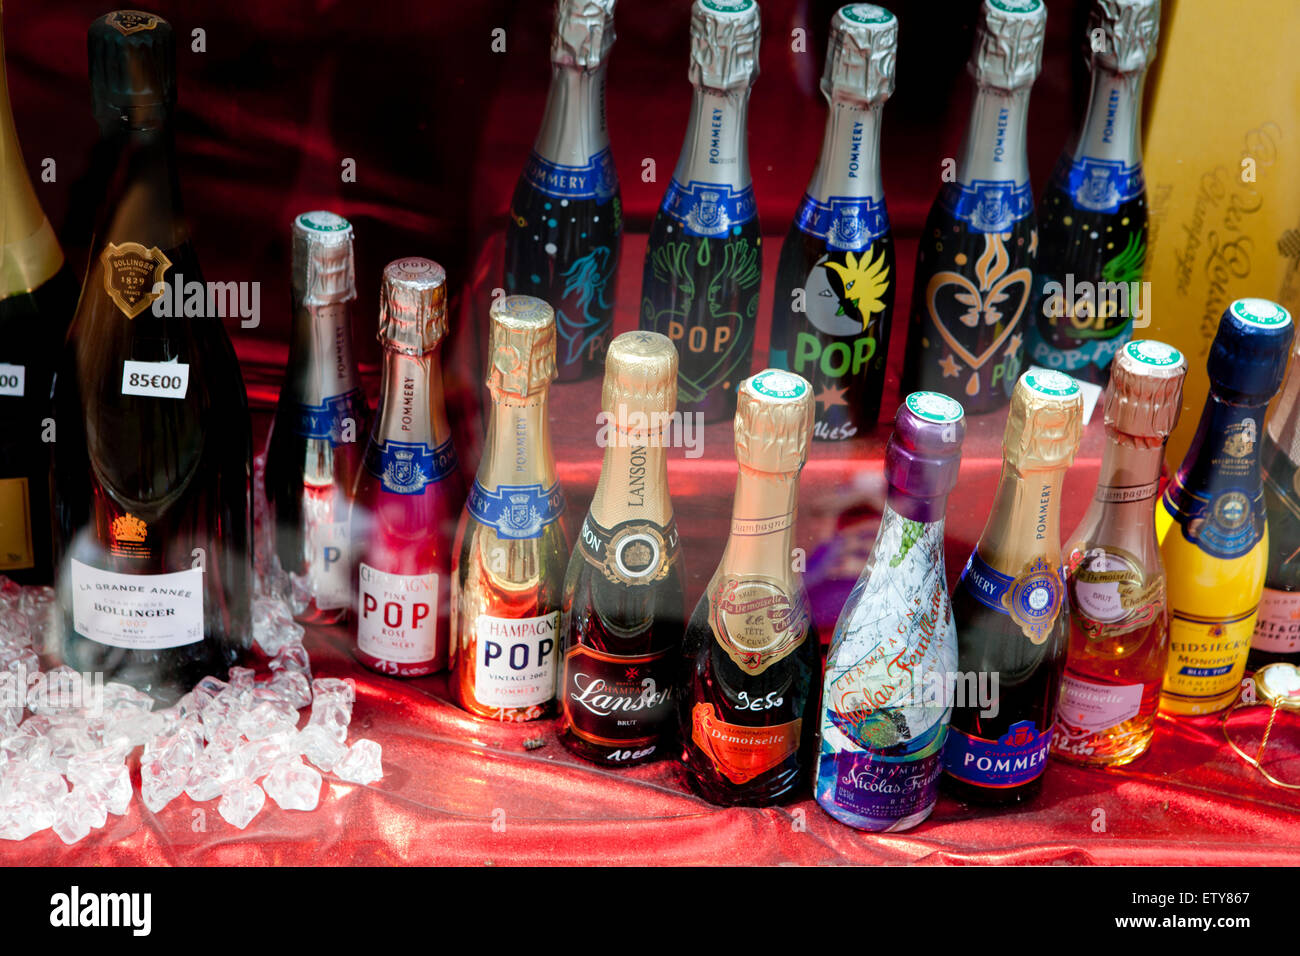 Different sort of Champagne bottles on sale in a shop in Rheims - Stock Image